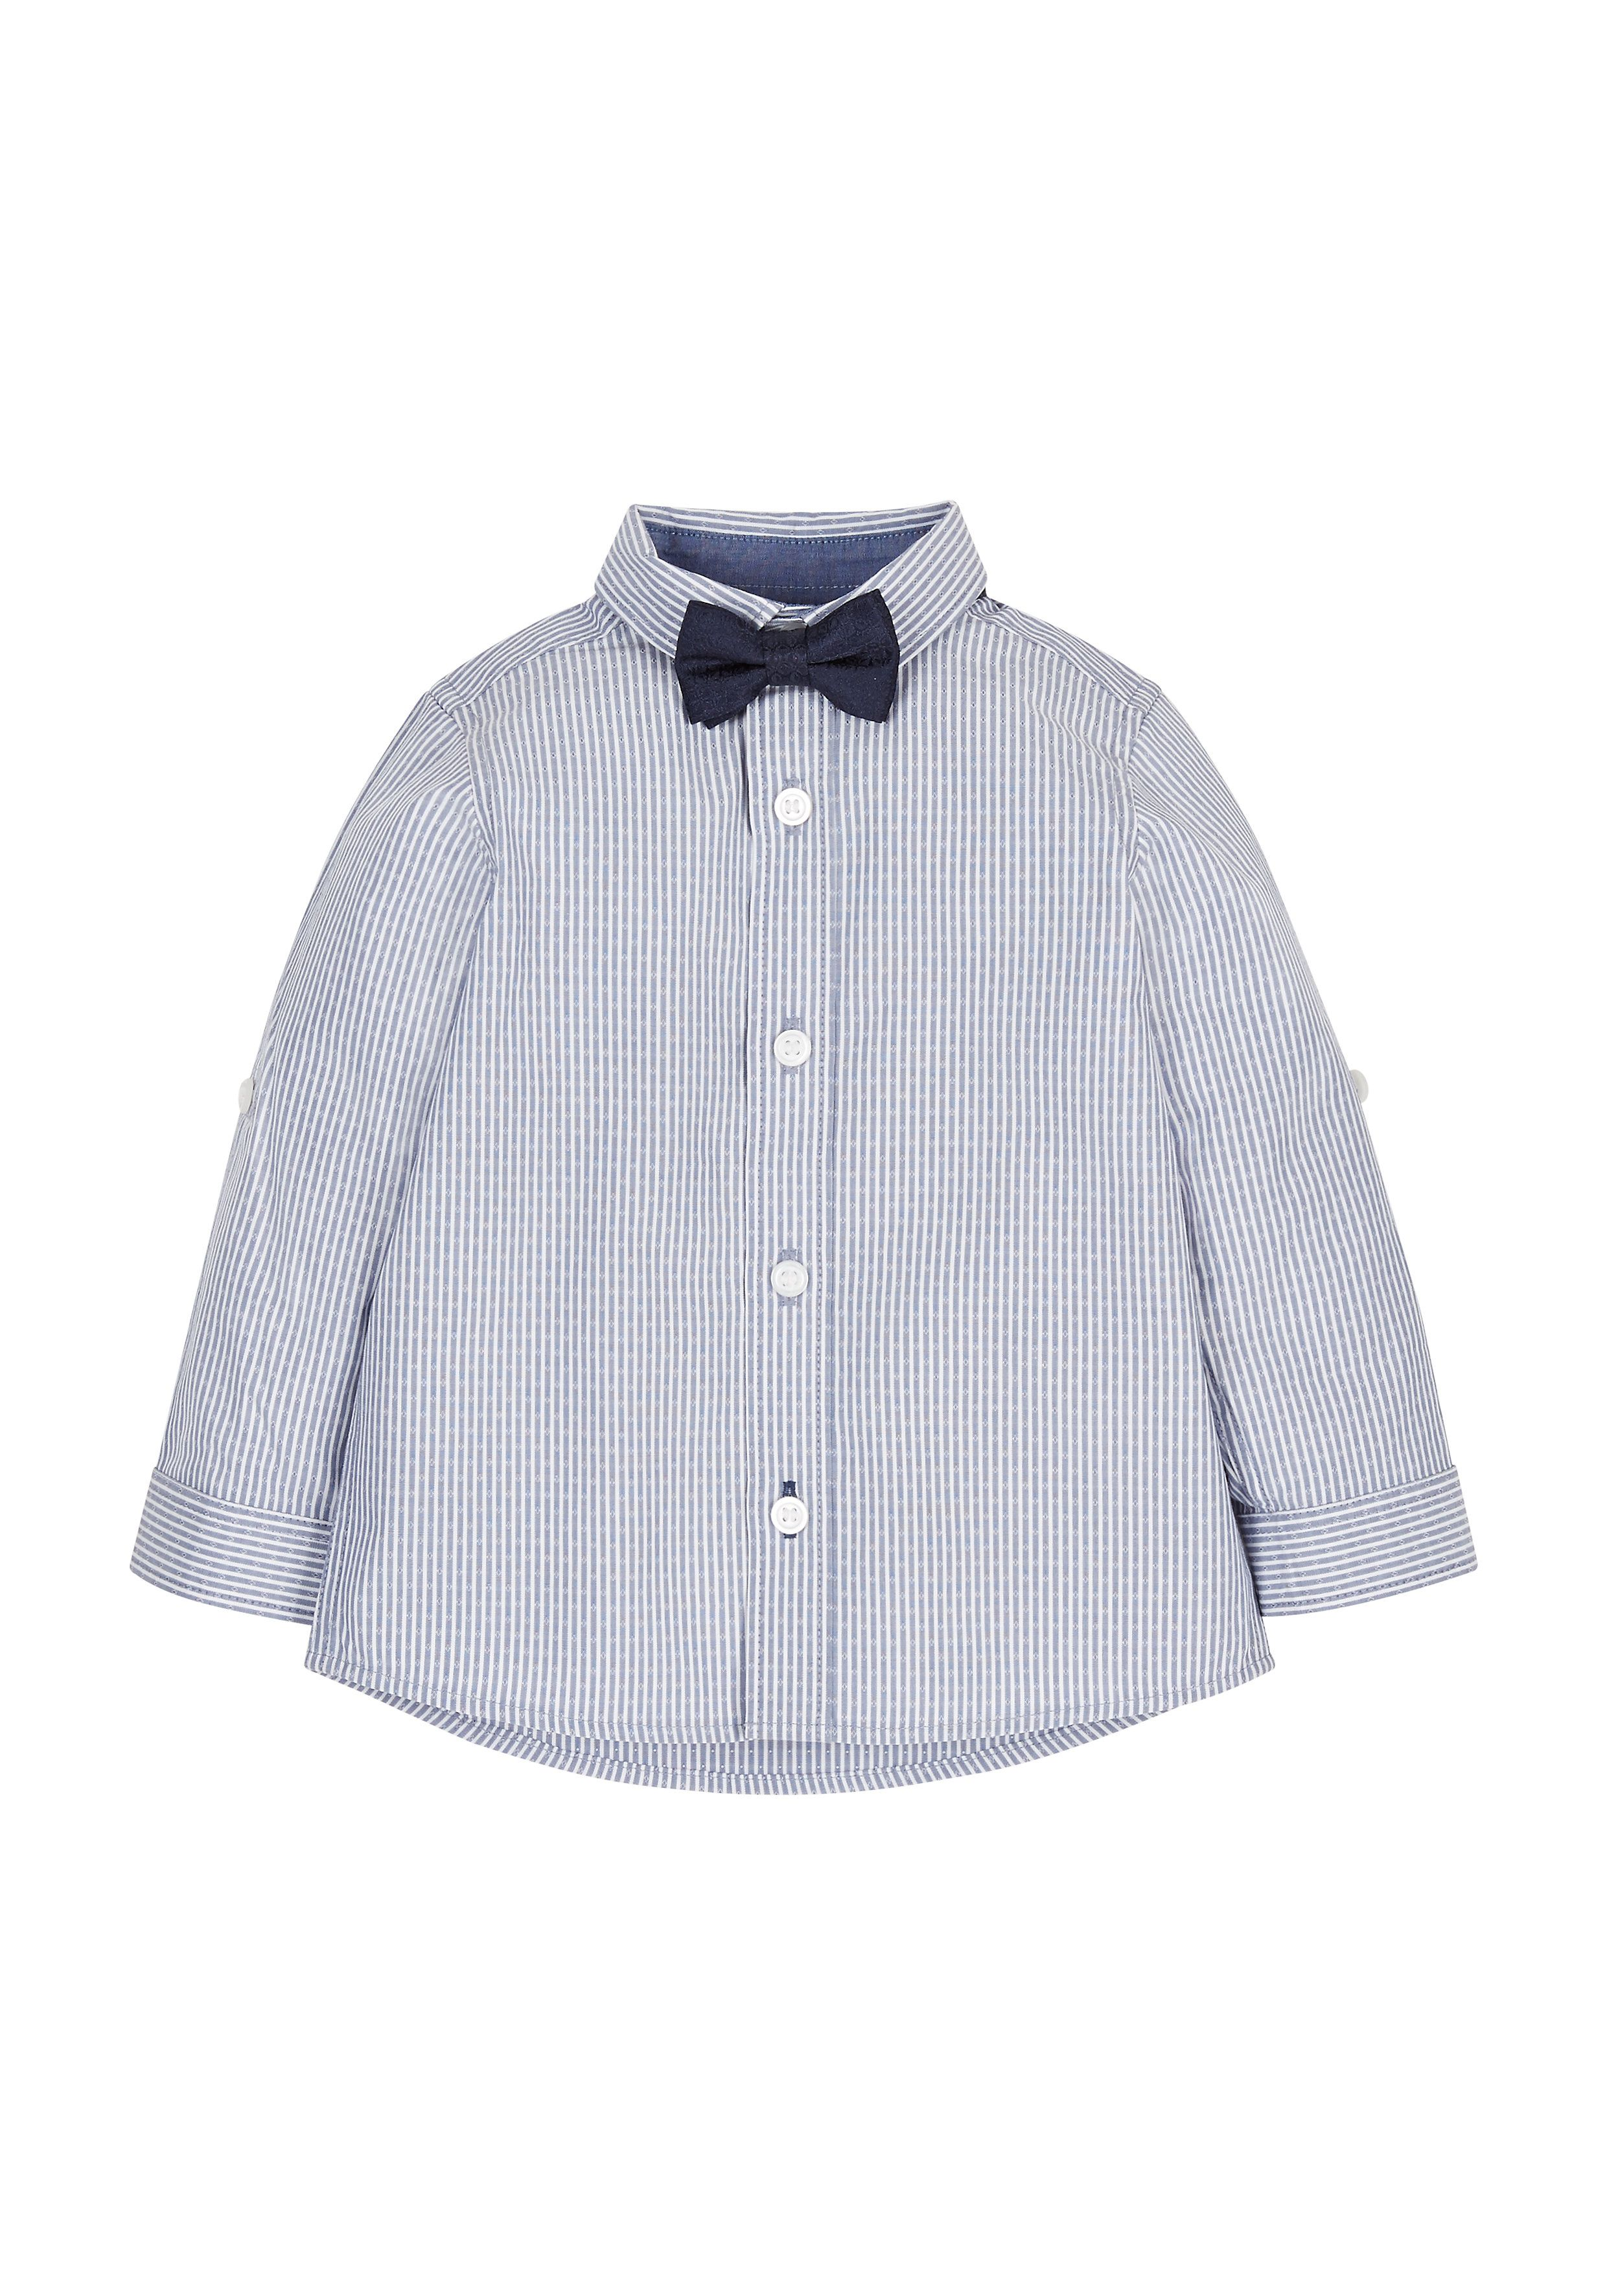 Mothercare | Striped Shirt And Bow Tie Set